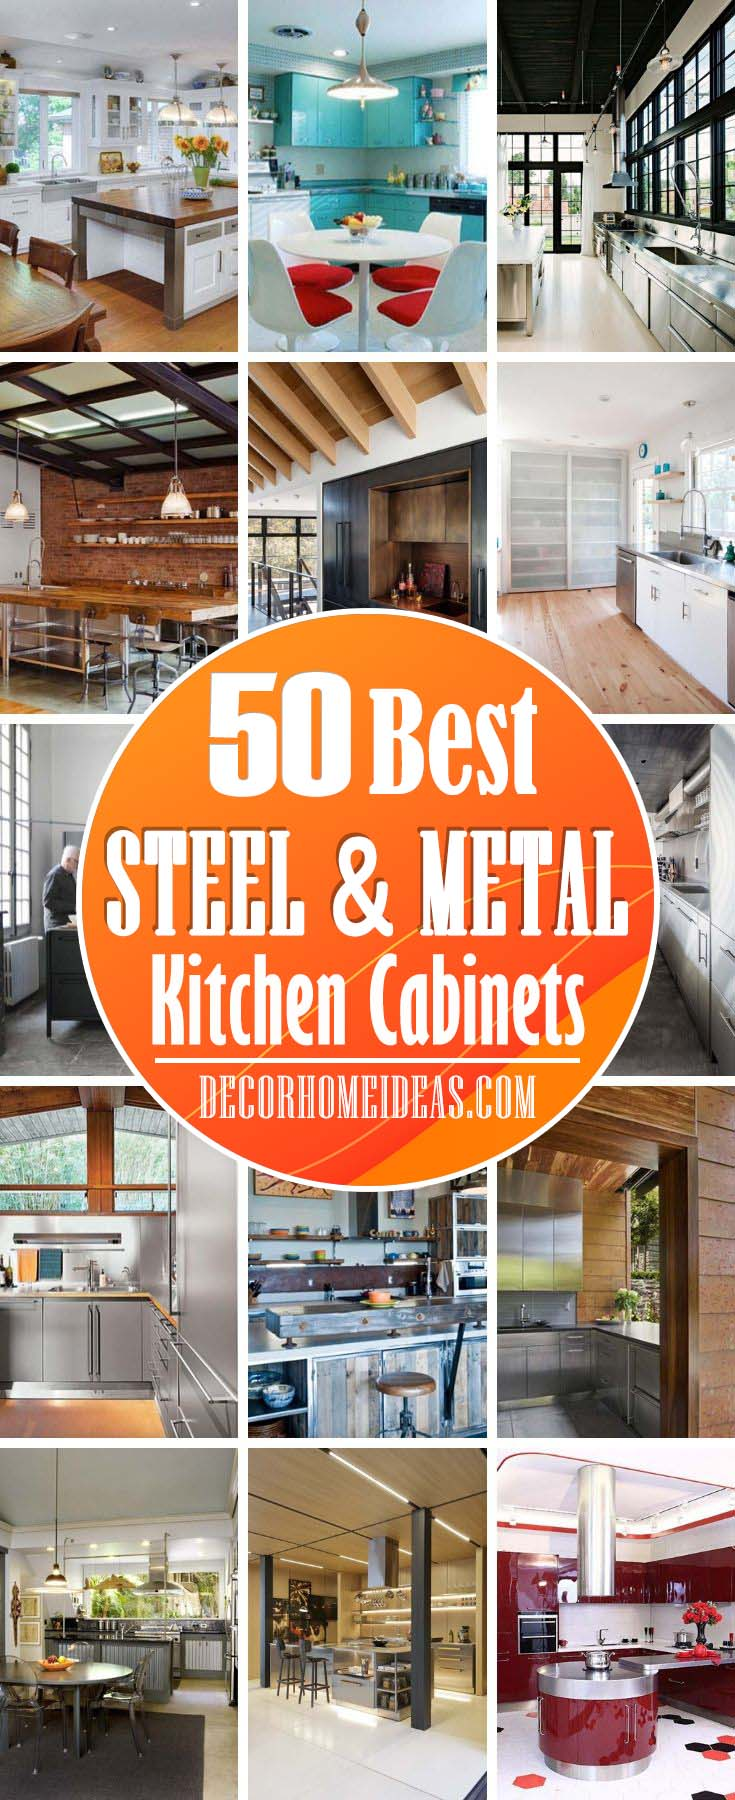 Best Metal Kitchen Cabinets. Metal steel kitchen cabinets ideas and designs, trends and paint colors. Photos of interior design with metal kitchen cabinets. #metal #steel #kitchen #cabinets #decorhomeideas